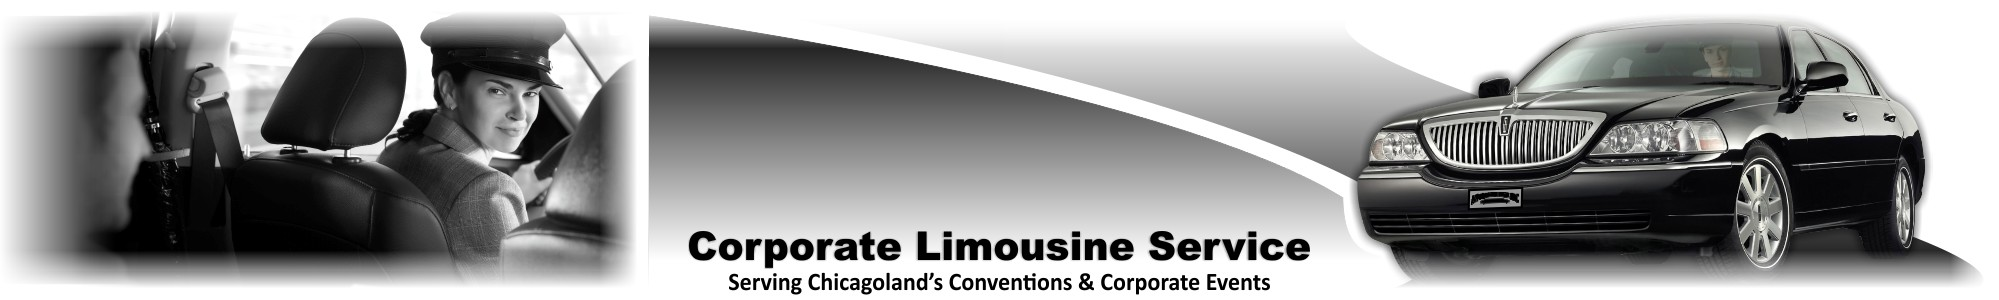 Chicagoland Corporate Limousine Service by Affordable Limo Inc